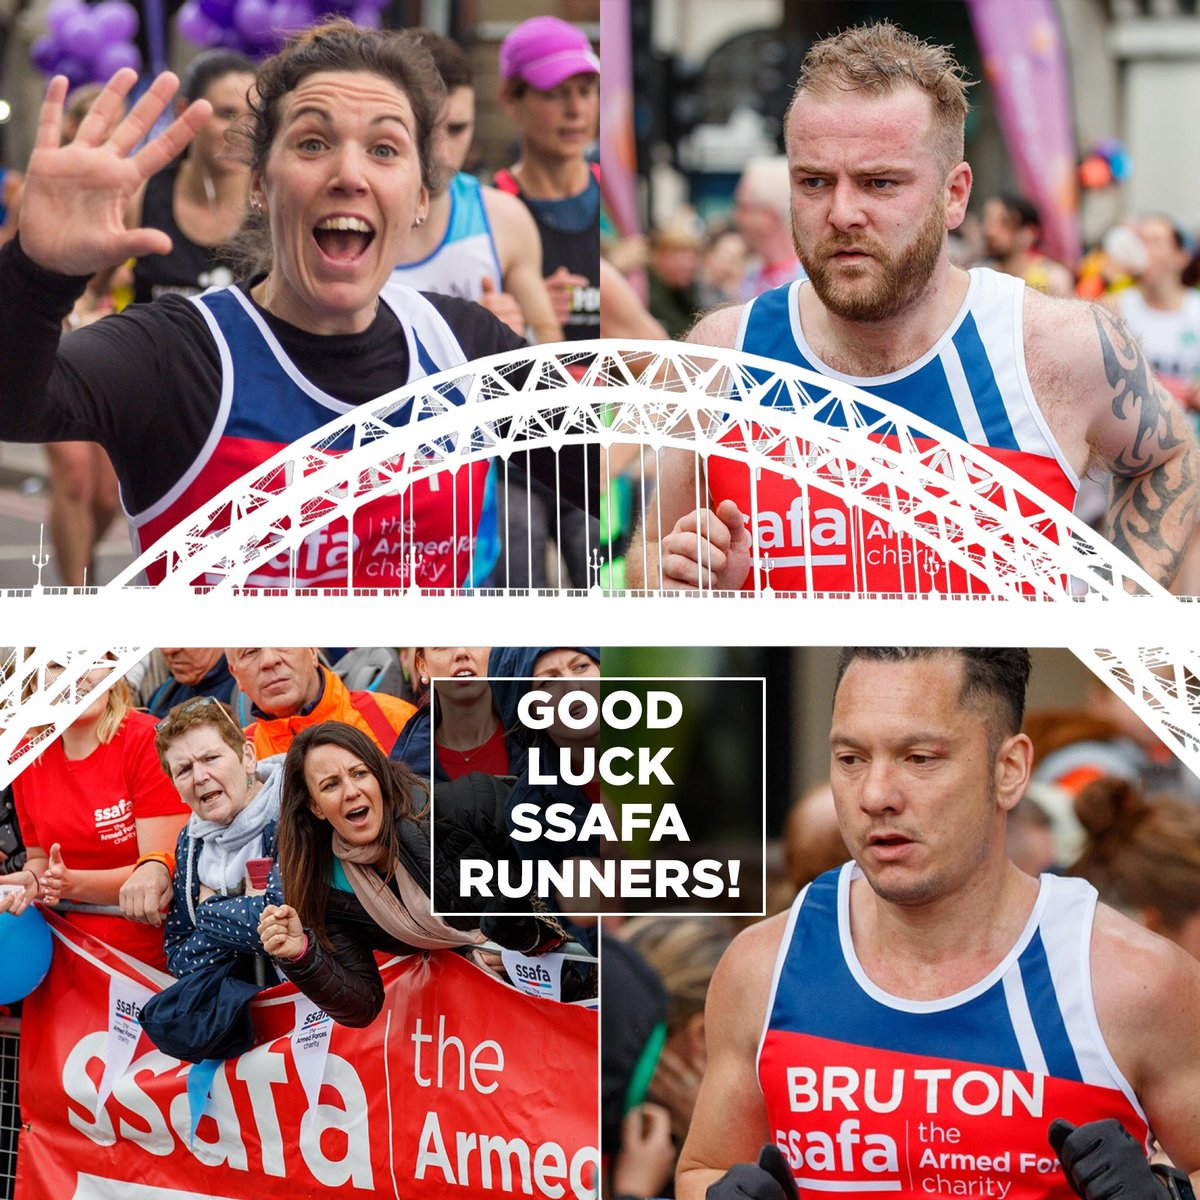 75 wonderful runners are taking part for @SSAFA in the #GreatNorthRun this morning. Their efforts will make such a difference to our vital work. Can you take a minute to give them some appreciation below? They'd love to hear from you! #GNR2019 #BeYourGreatest <br>http://pic.twitter.com/oGBaGPeS03